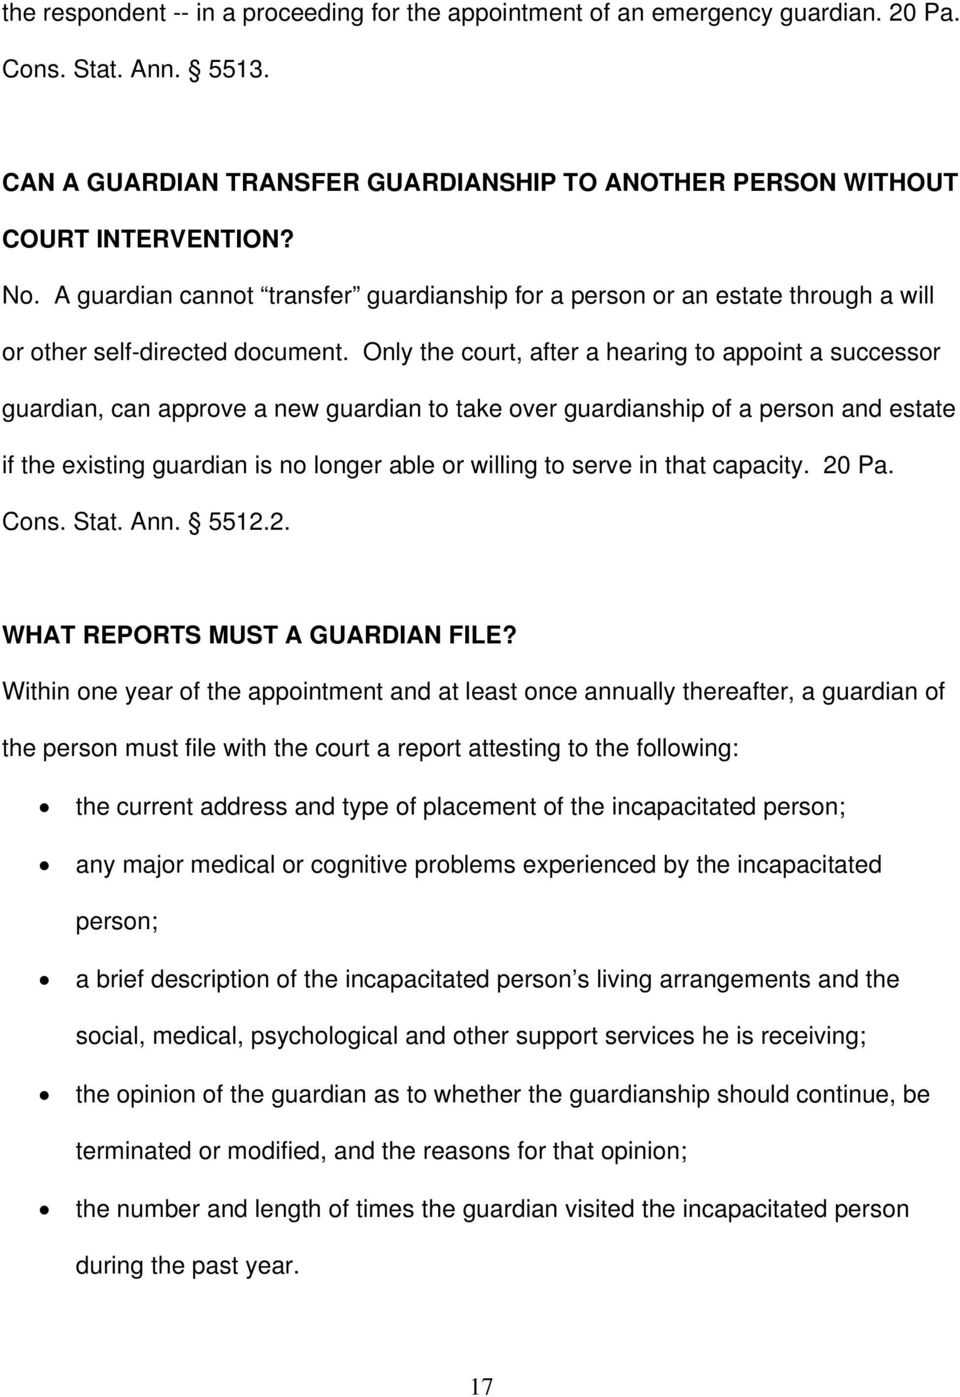 Only the court, after a hearing to appoint a successor guardian, can approve a new guardian to take over guardianship of a person and estate if the existing guardian is no longer able or willing to